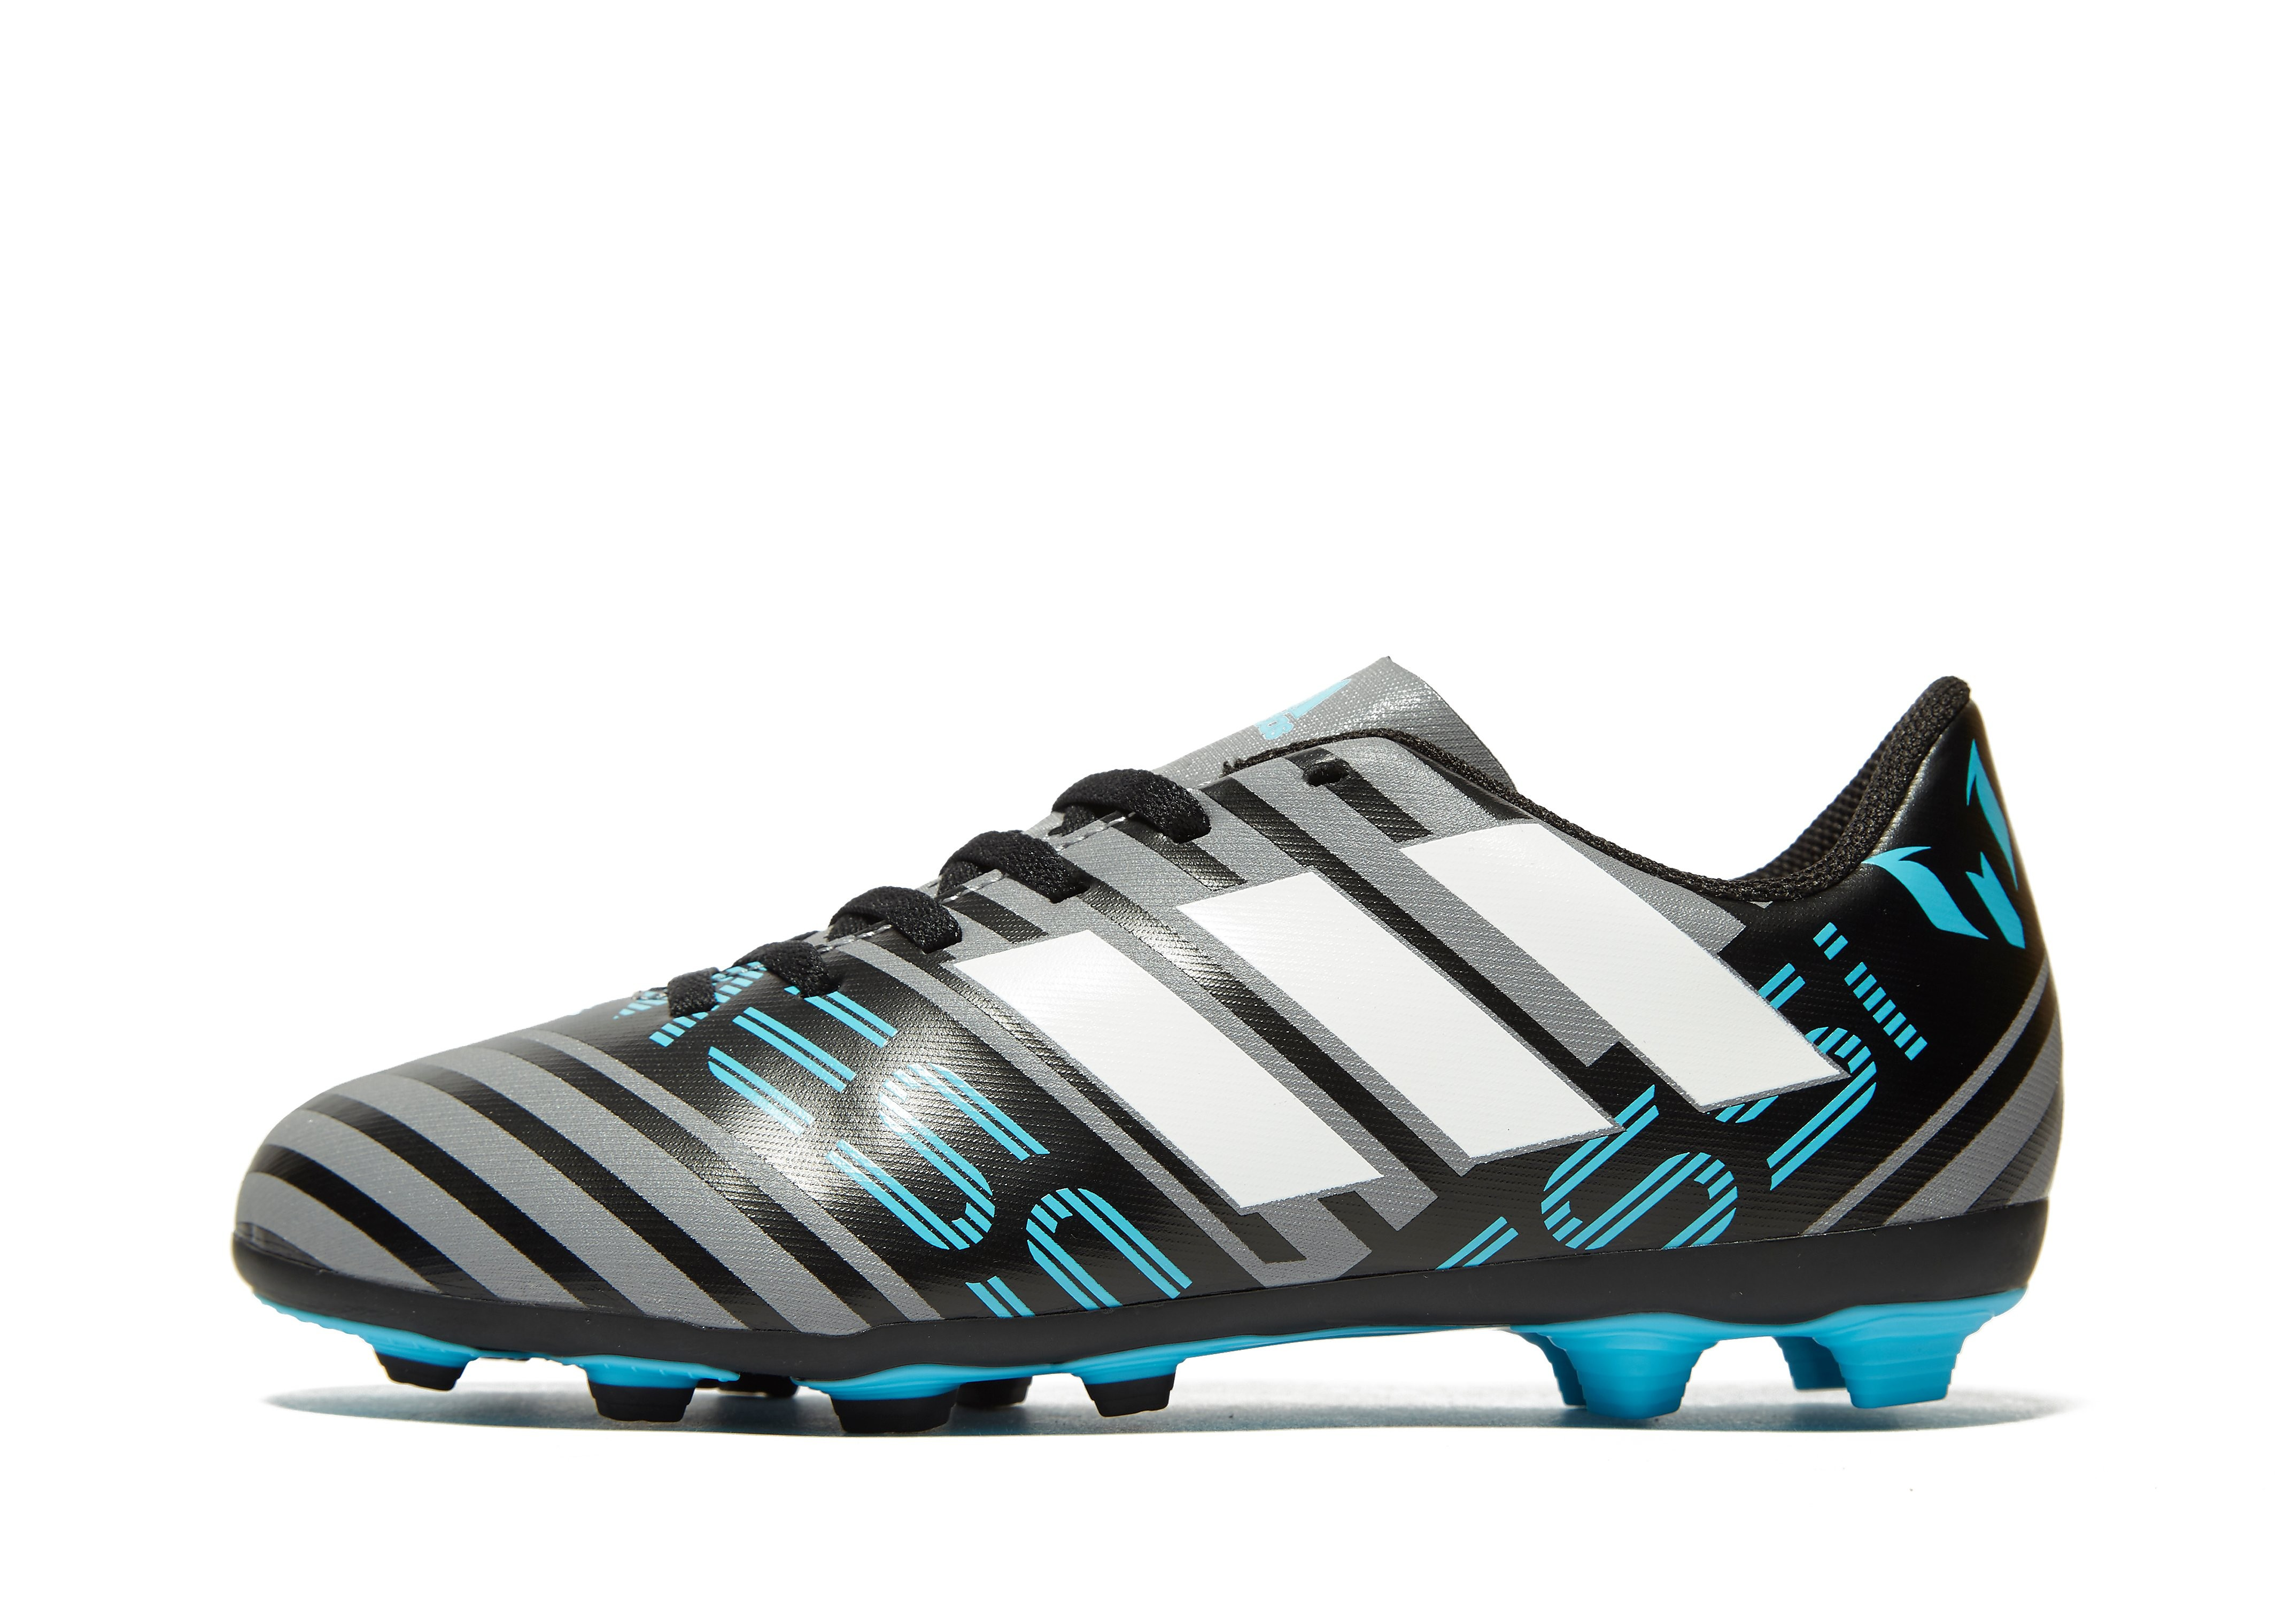 adidas Cold Blooded Nemeziz Messi 17.4 FG Children